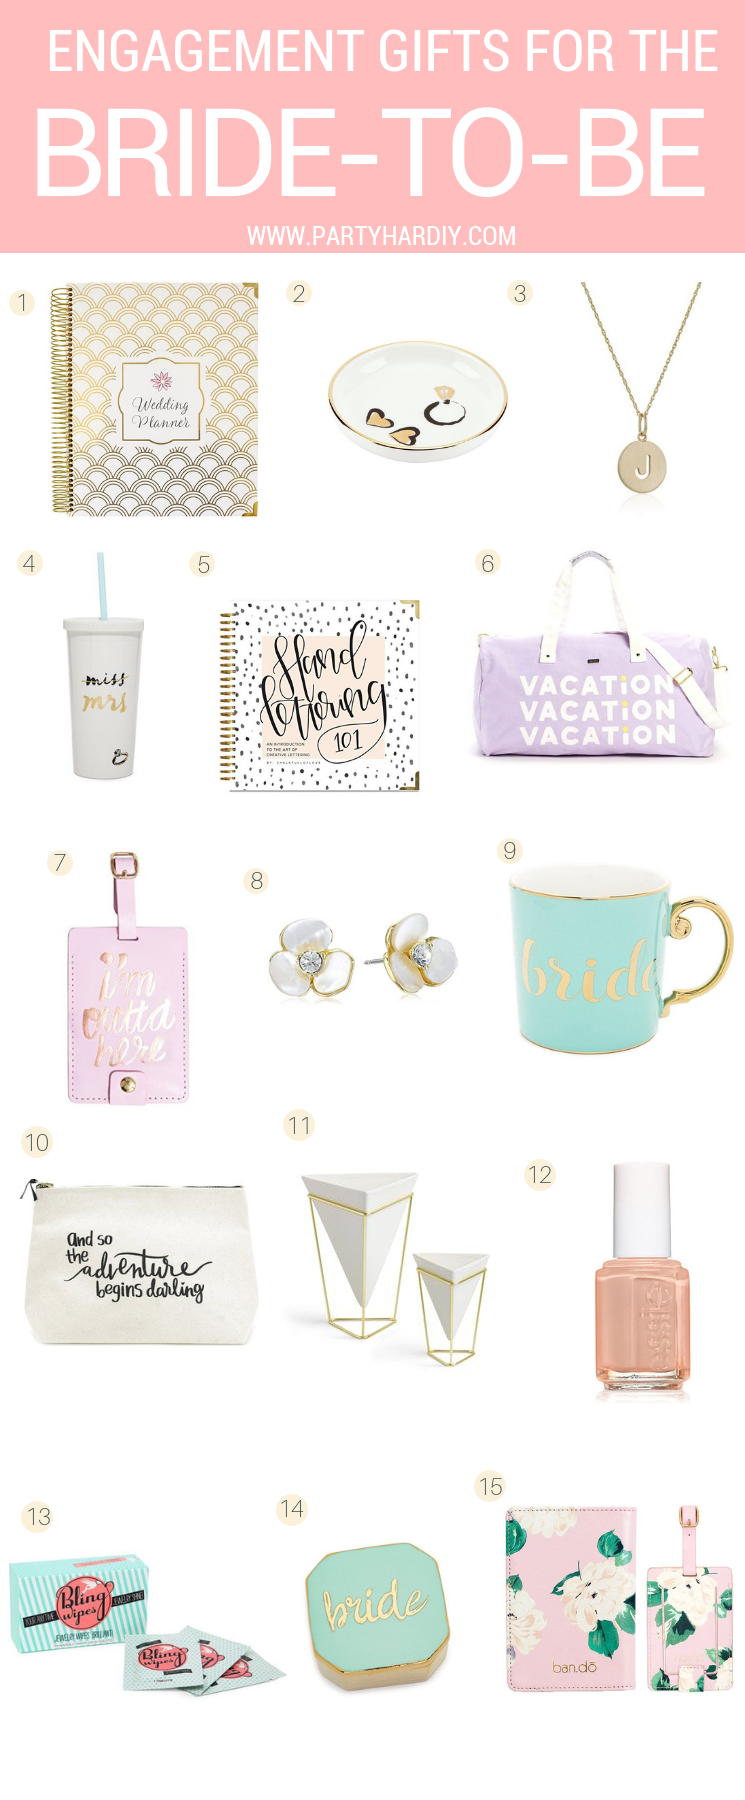 I've created a list of 15 awesome items that will make perfect engagement gift and even bridal shower gifts! They're all so classy and gorgeous. She's gonna love them! #engagementparty #engagementgifts #weddingplanning